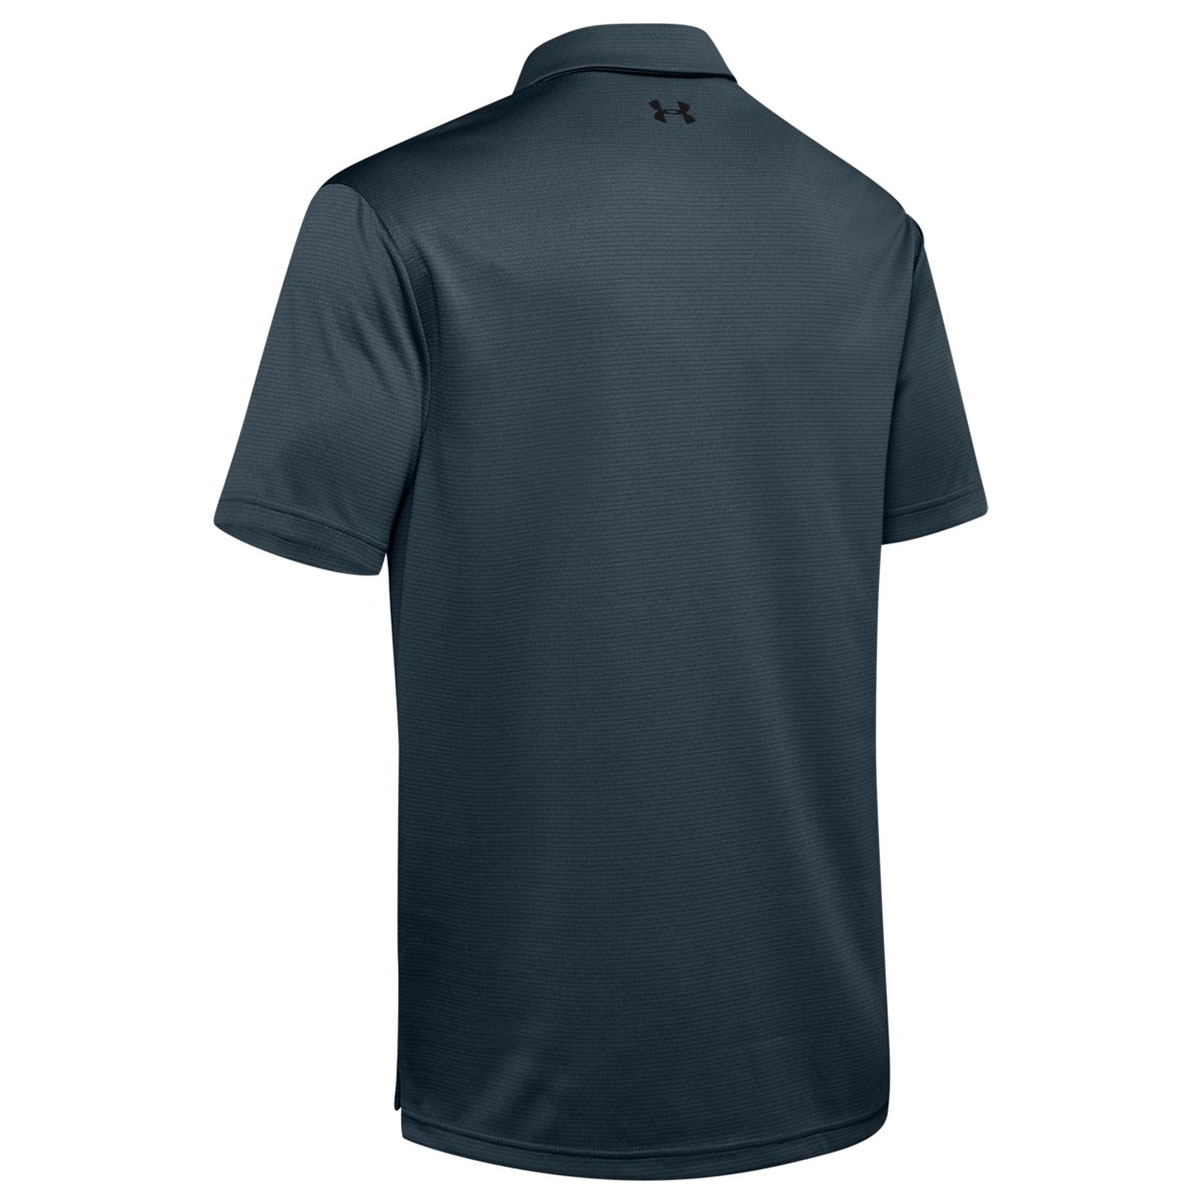 Under-Armour-Mens-2019-Golf-Tech-Wicking-Textured-Soft-Light-Polo-Shirt thumbnail 95